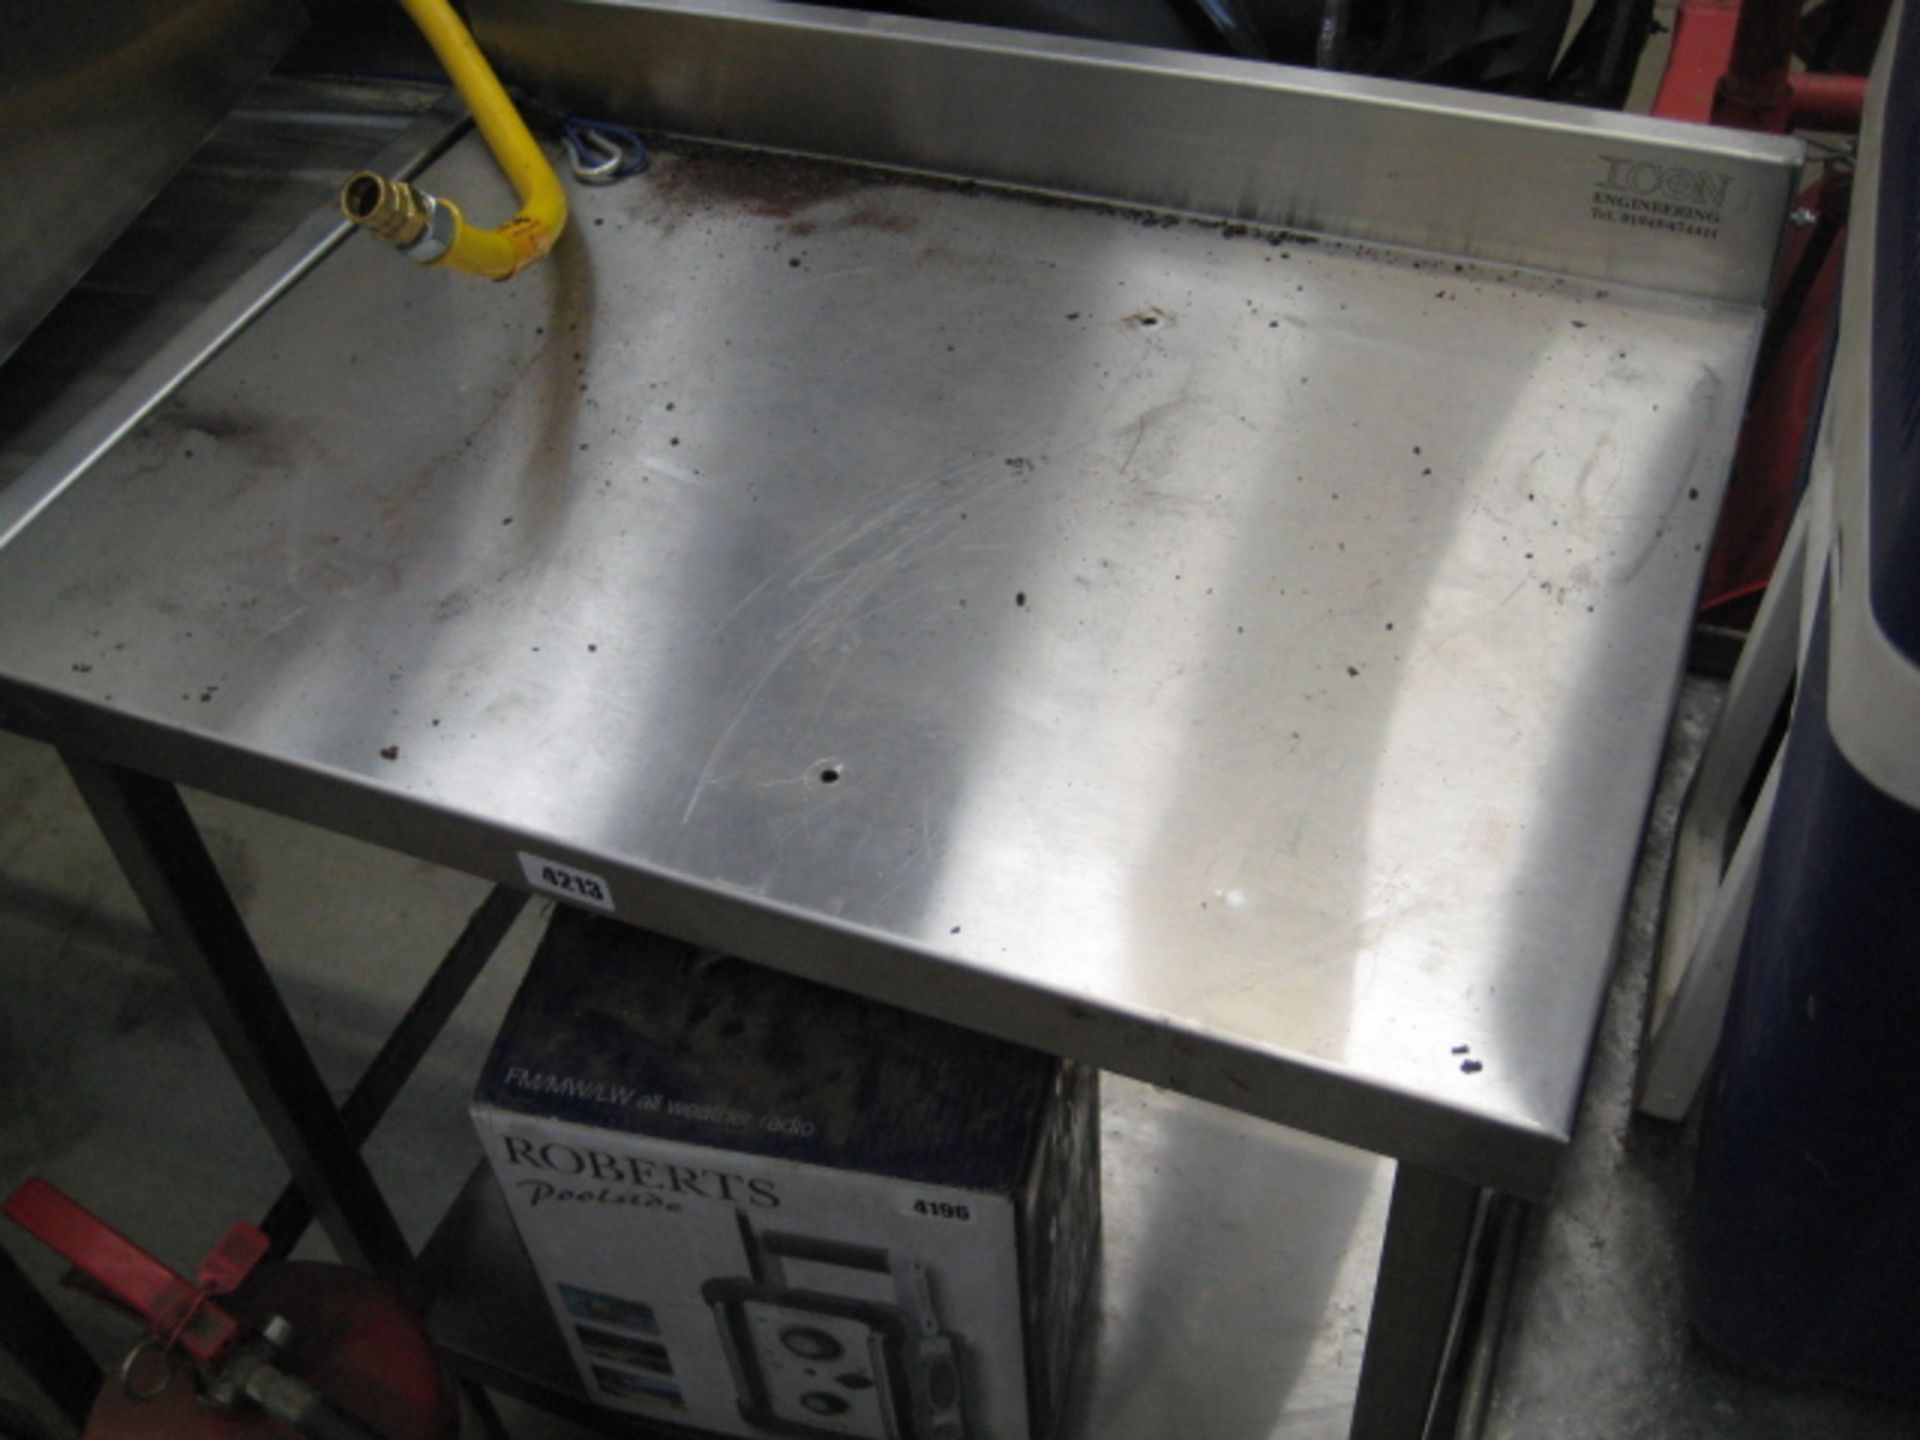 Lot 4213 - Stainless steel preparation table